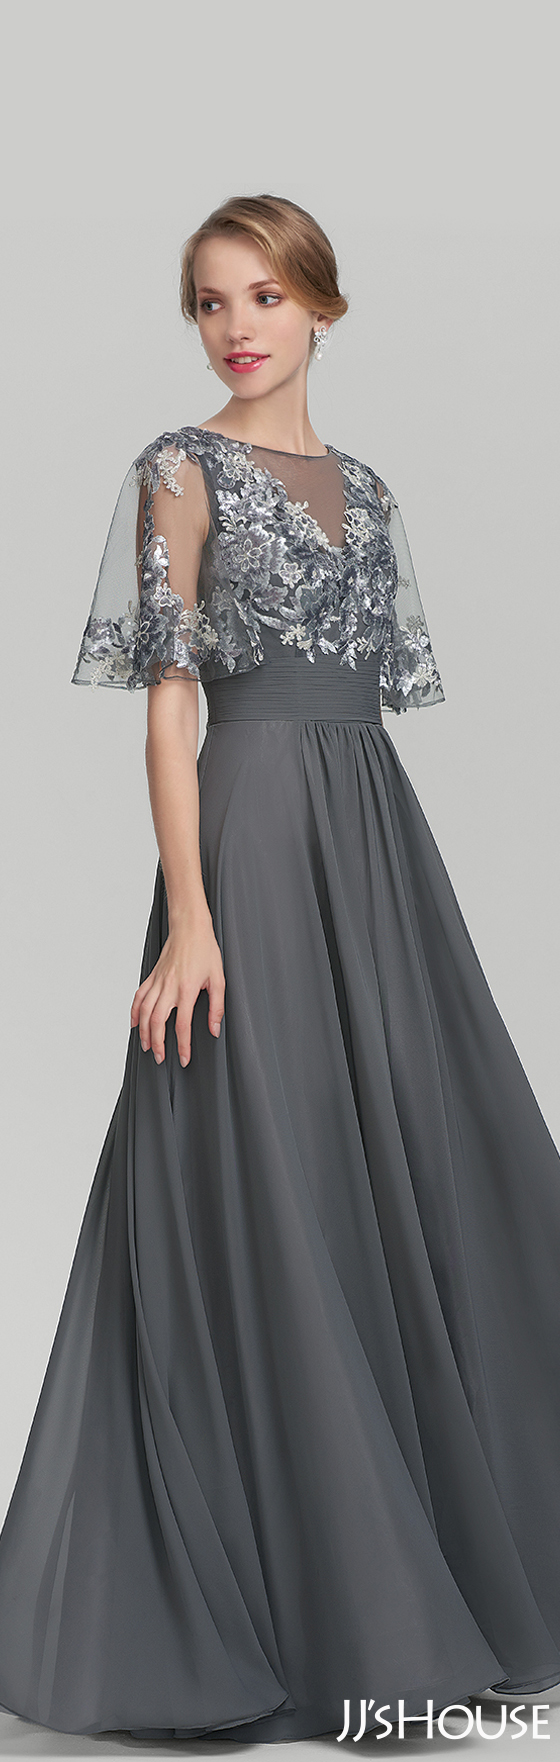 This Mother Dress Is Perfect For Any Age Jjshouse Mother Jjs